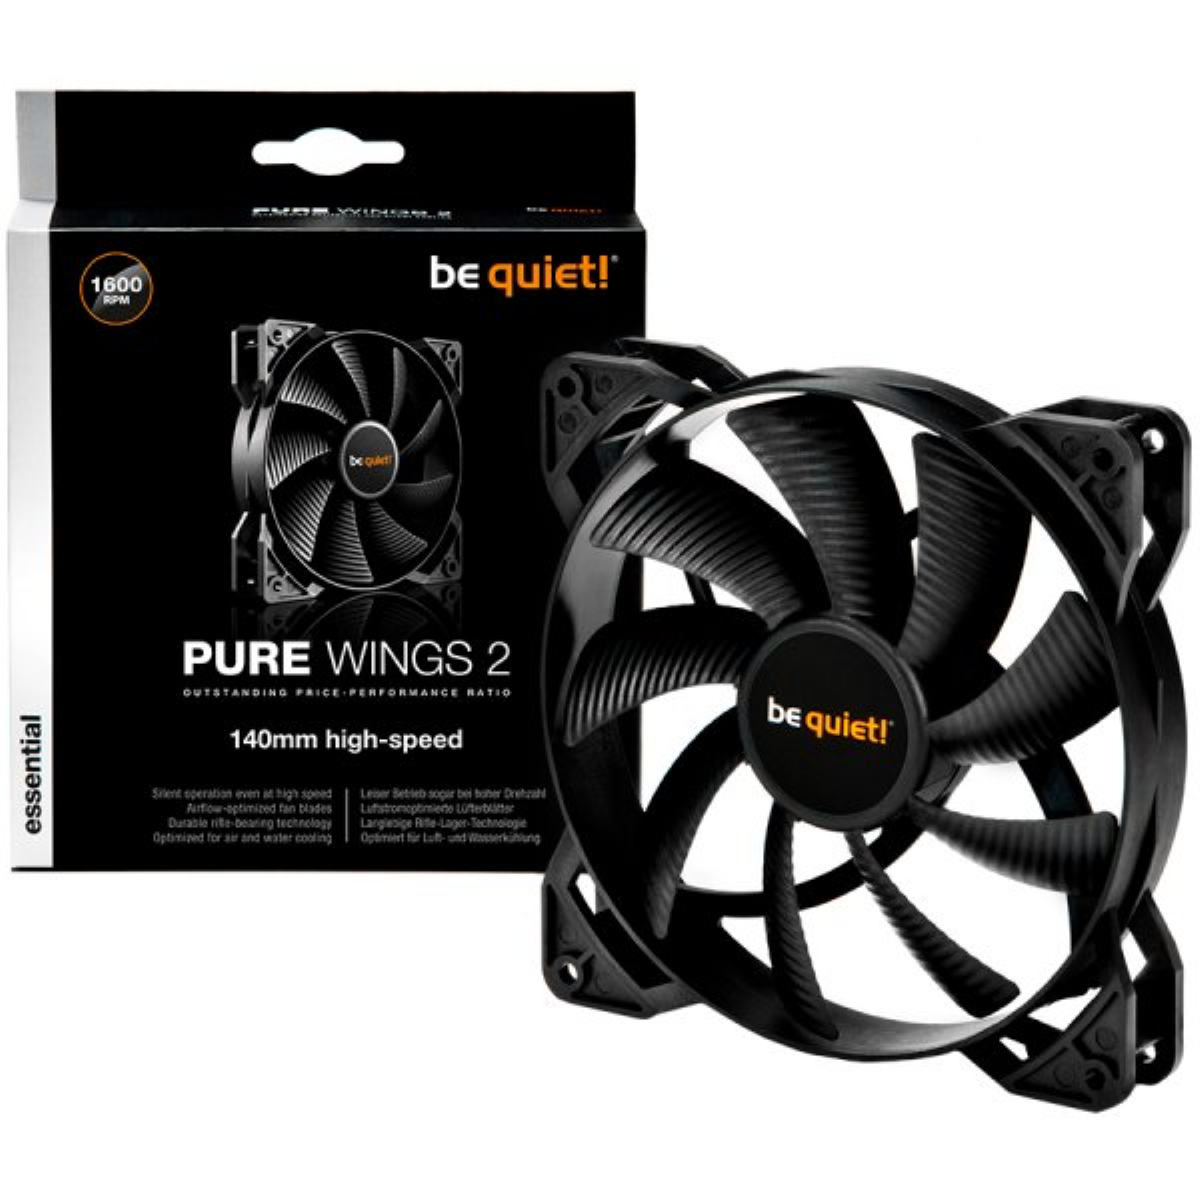 Вентилатор be quiet! Pure Wings 2 140mm 4-pin PWM High-Speed